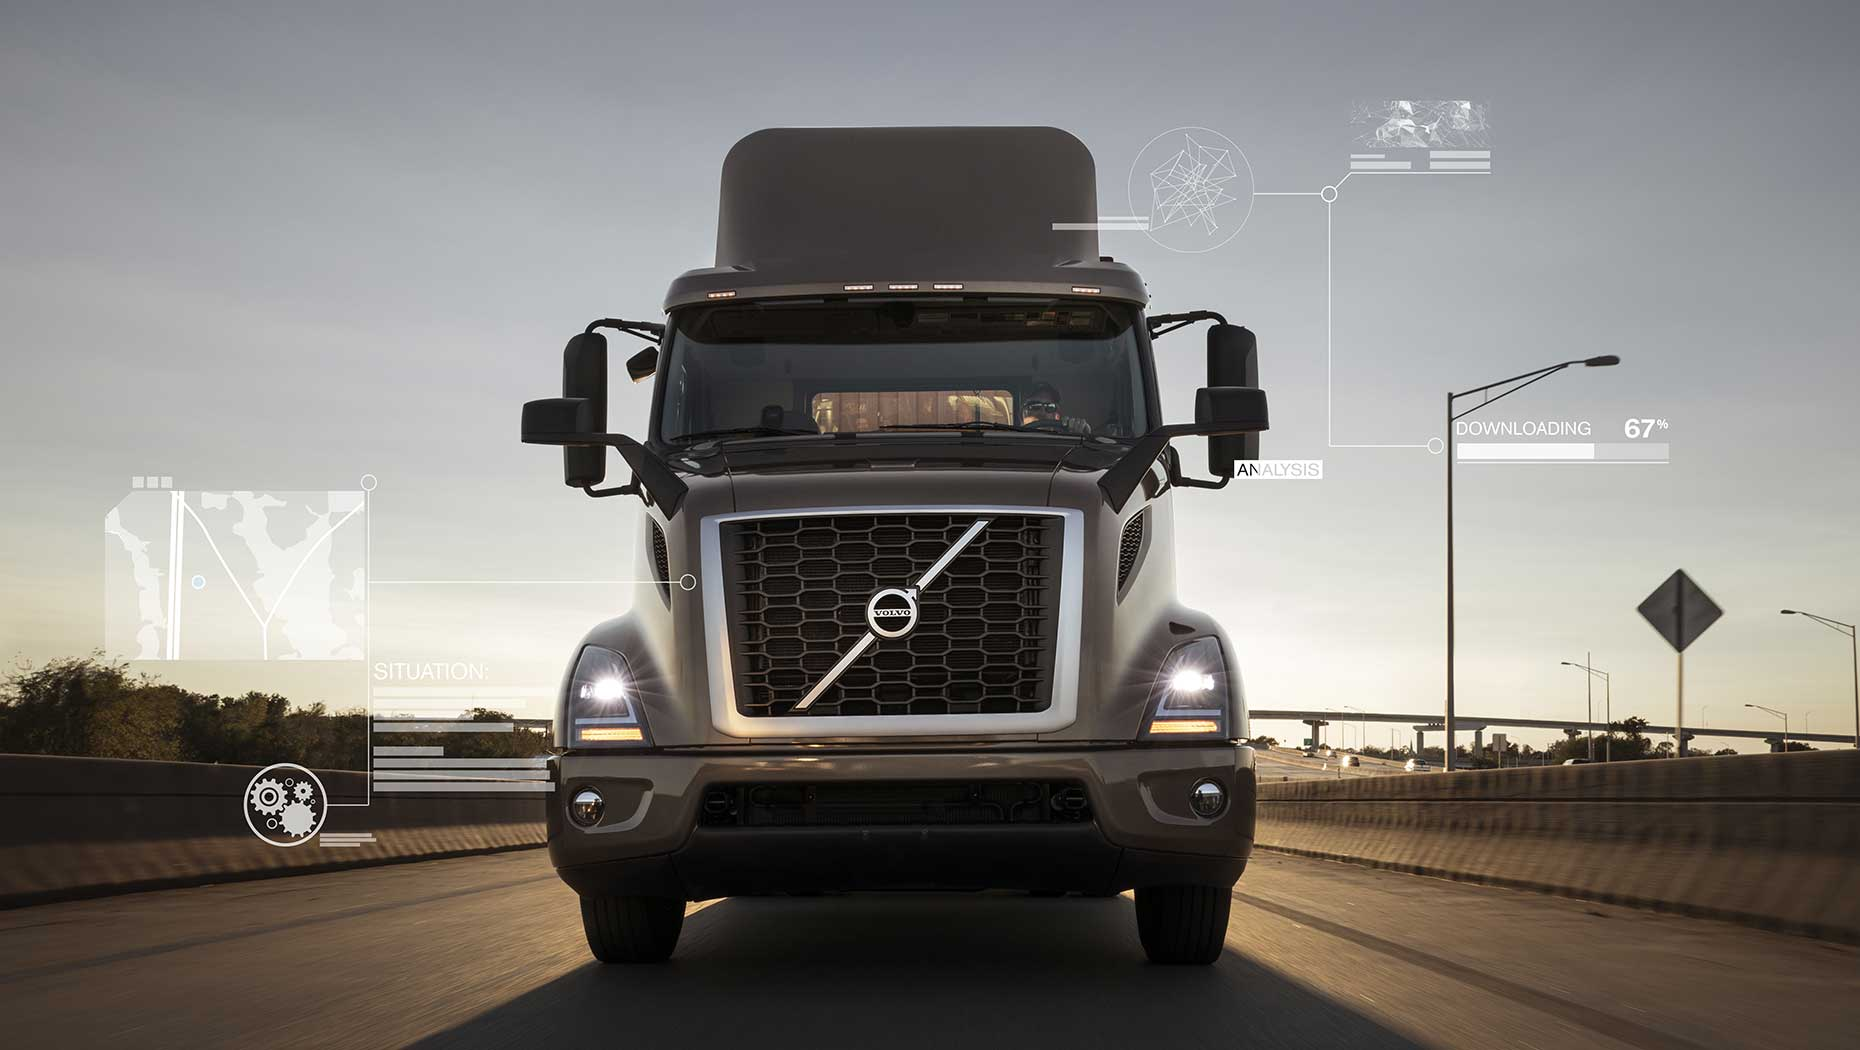 Volvo Trucks North America has announced that customers now have access to unlimited parameter updates through its Remote Programming service.